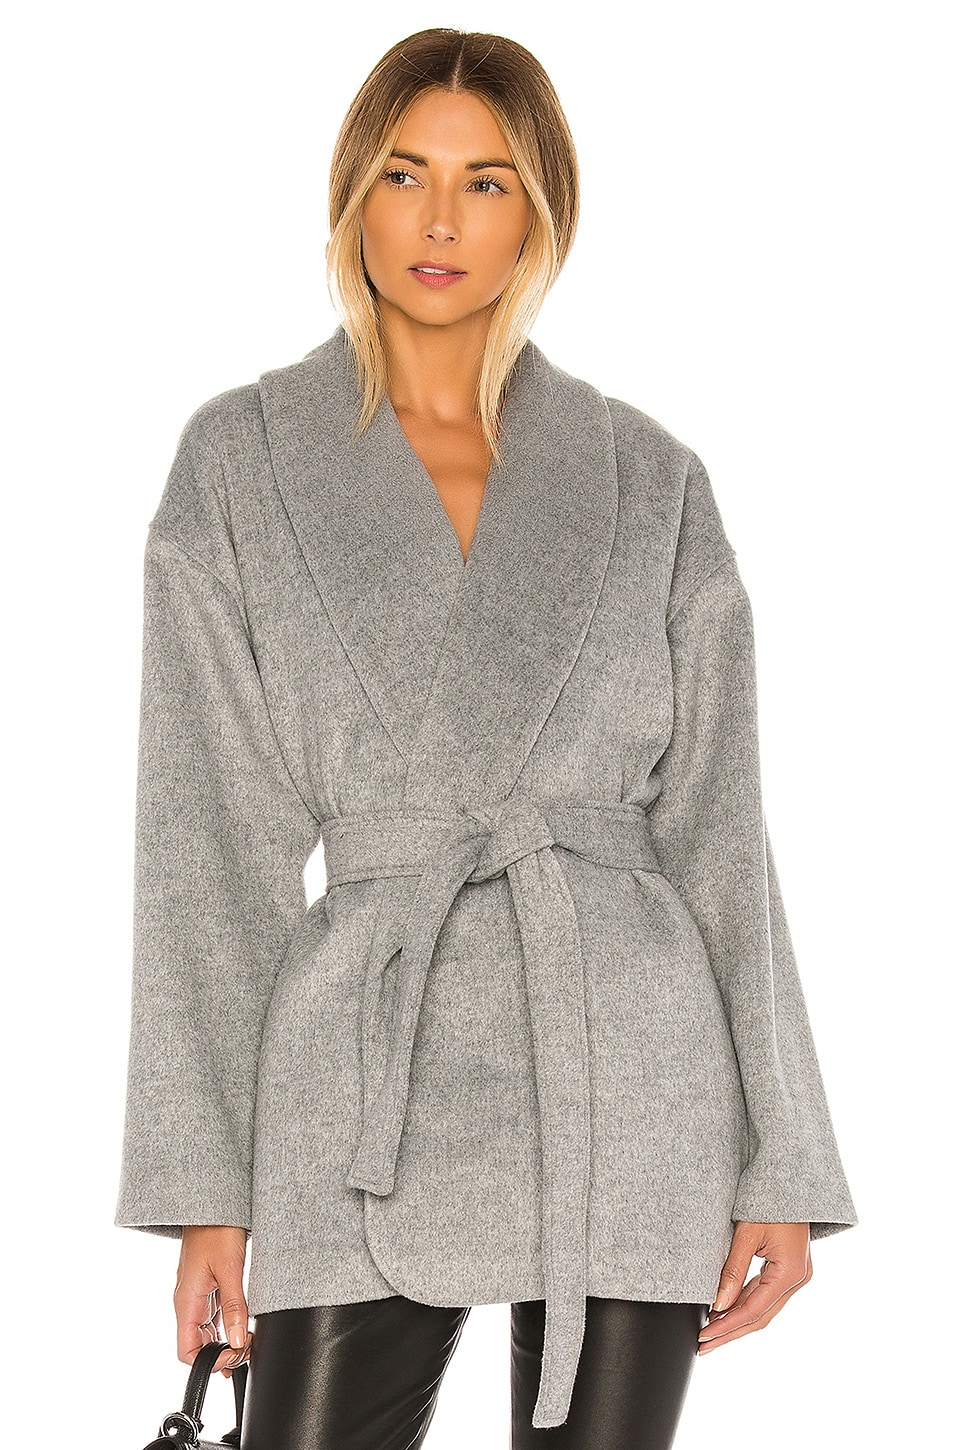 L'Academie The Allyson Coat in Gray